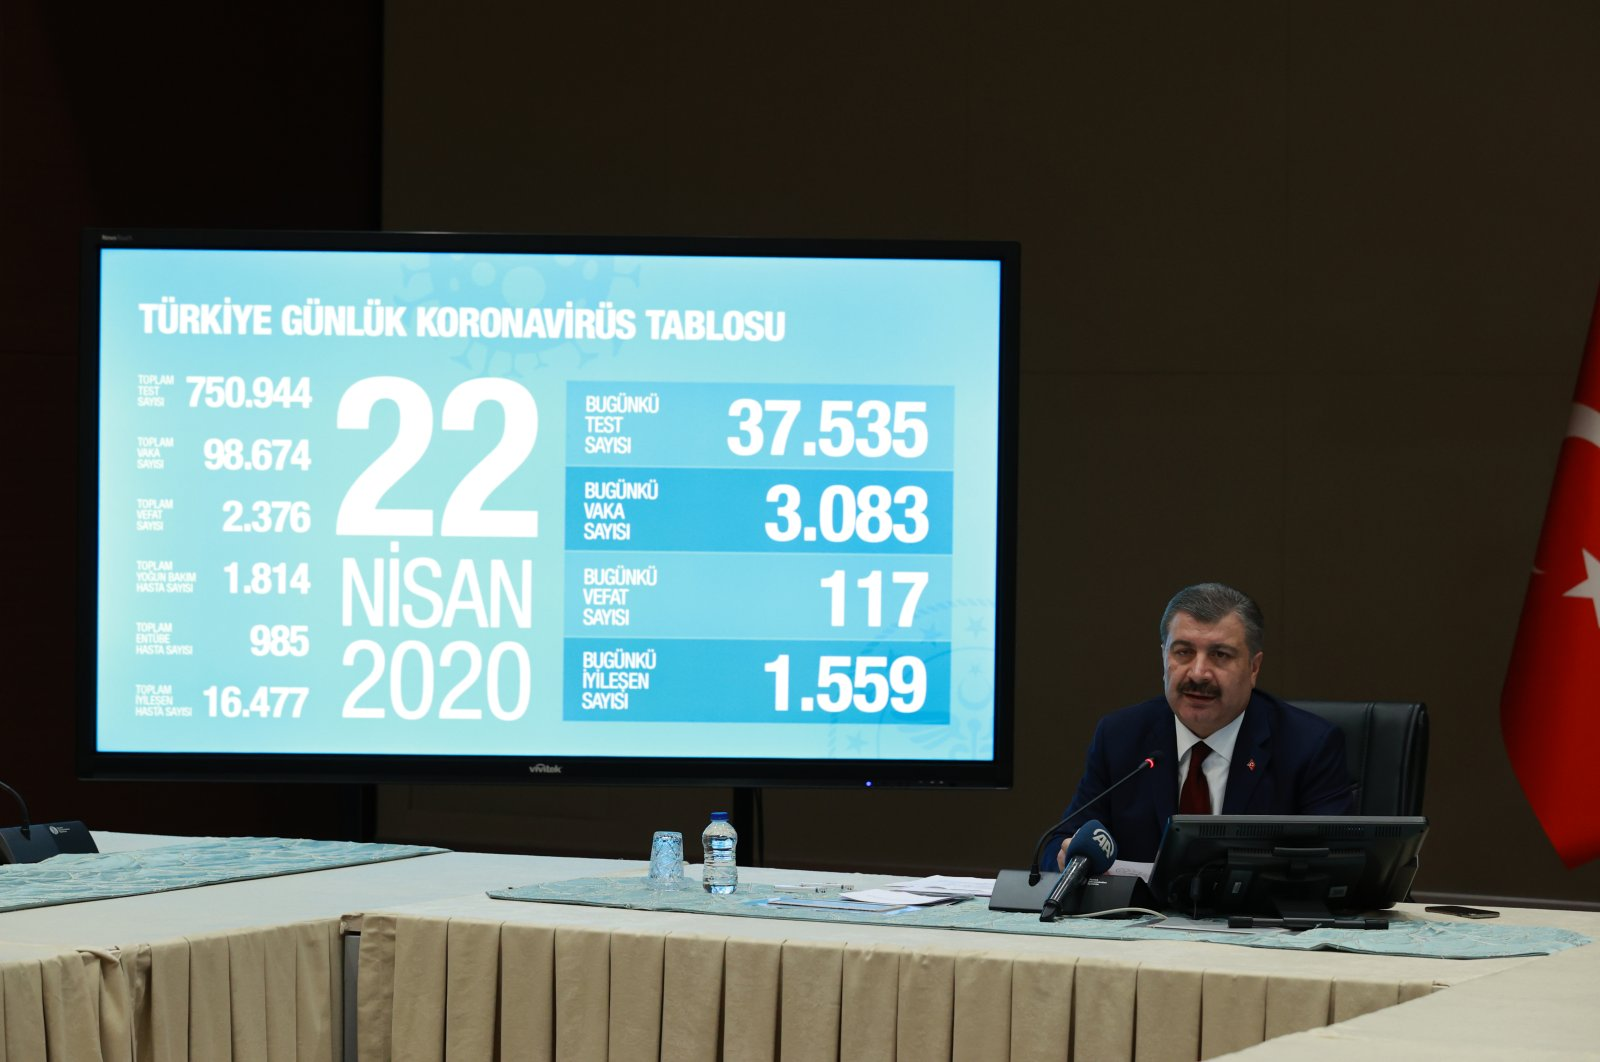 Health Minister Fahrettin Koca speaks at a press conference in the capital Ankara, Wednesday, April 22, 2020. (AA Photo)